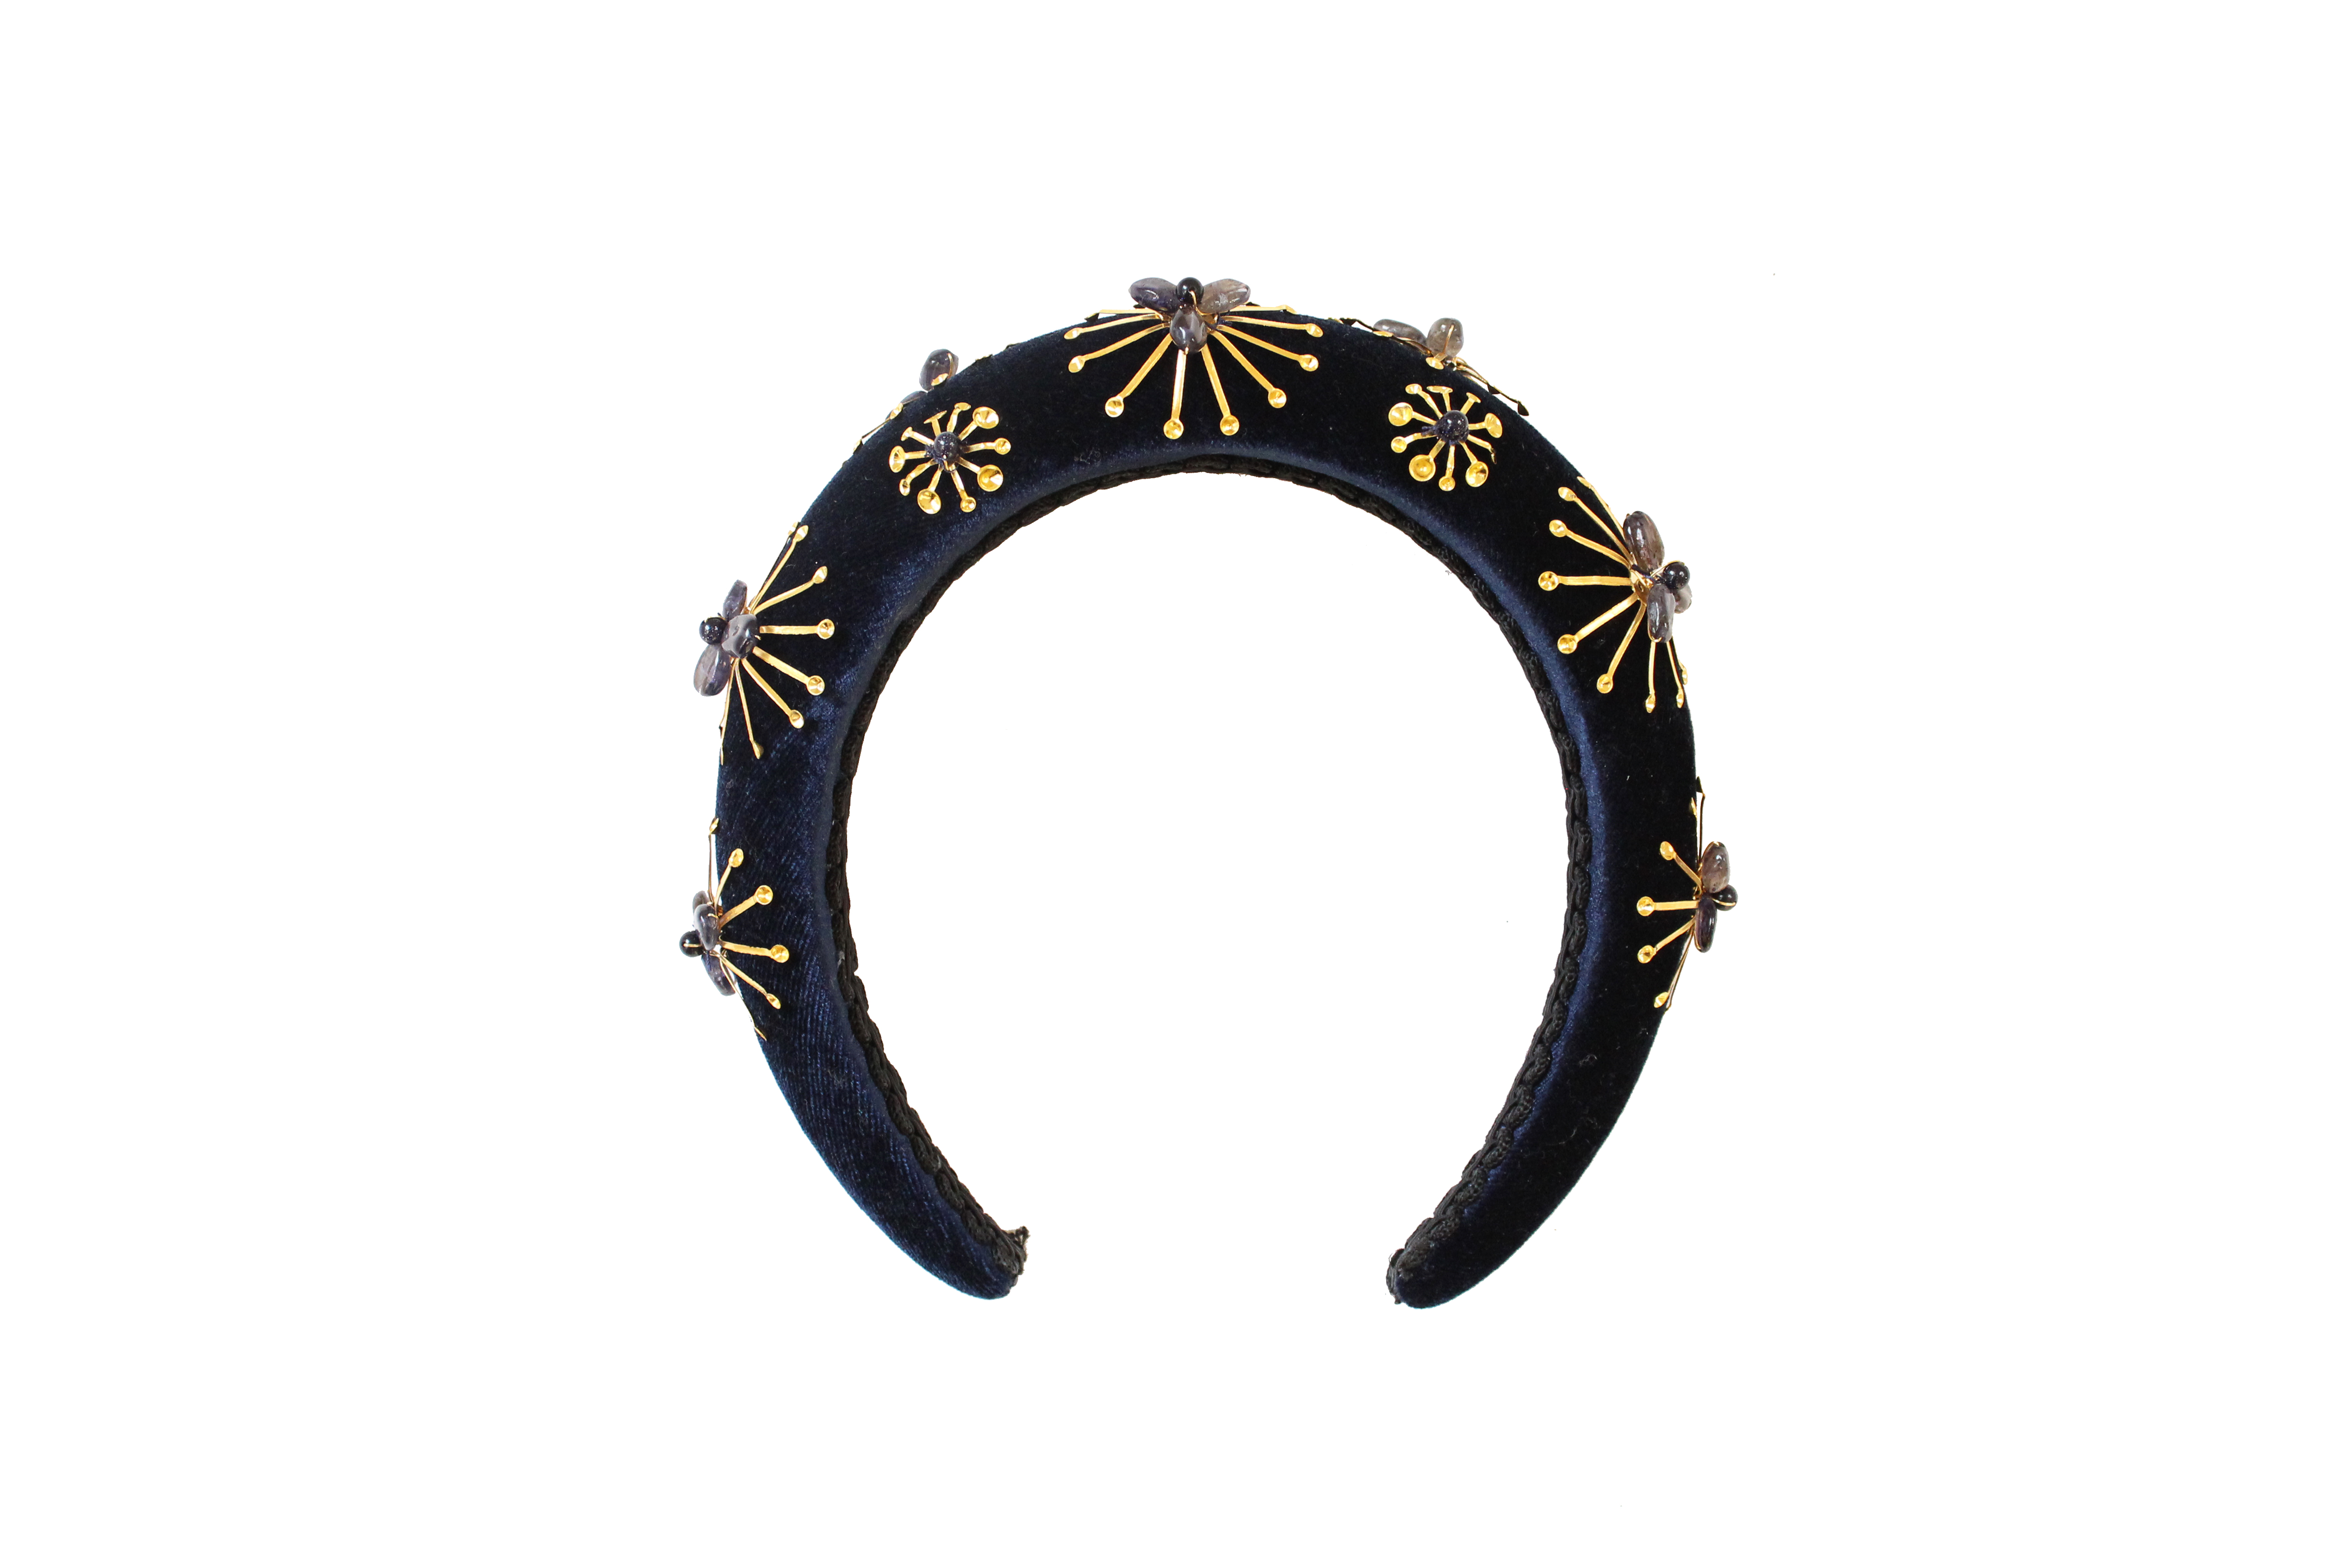 navy and gold embellished headband for the wedding party